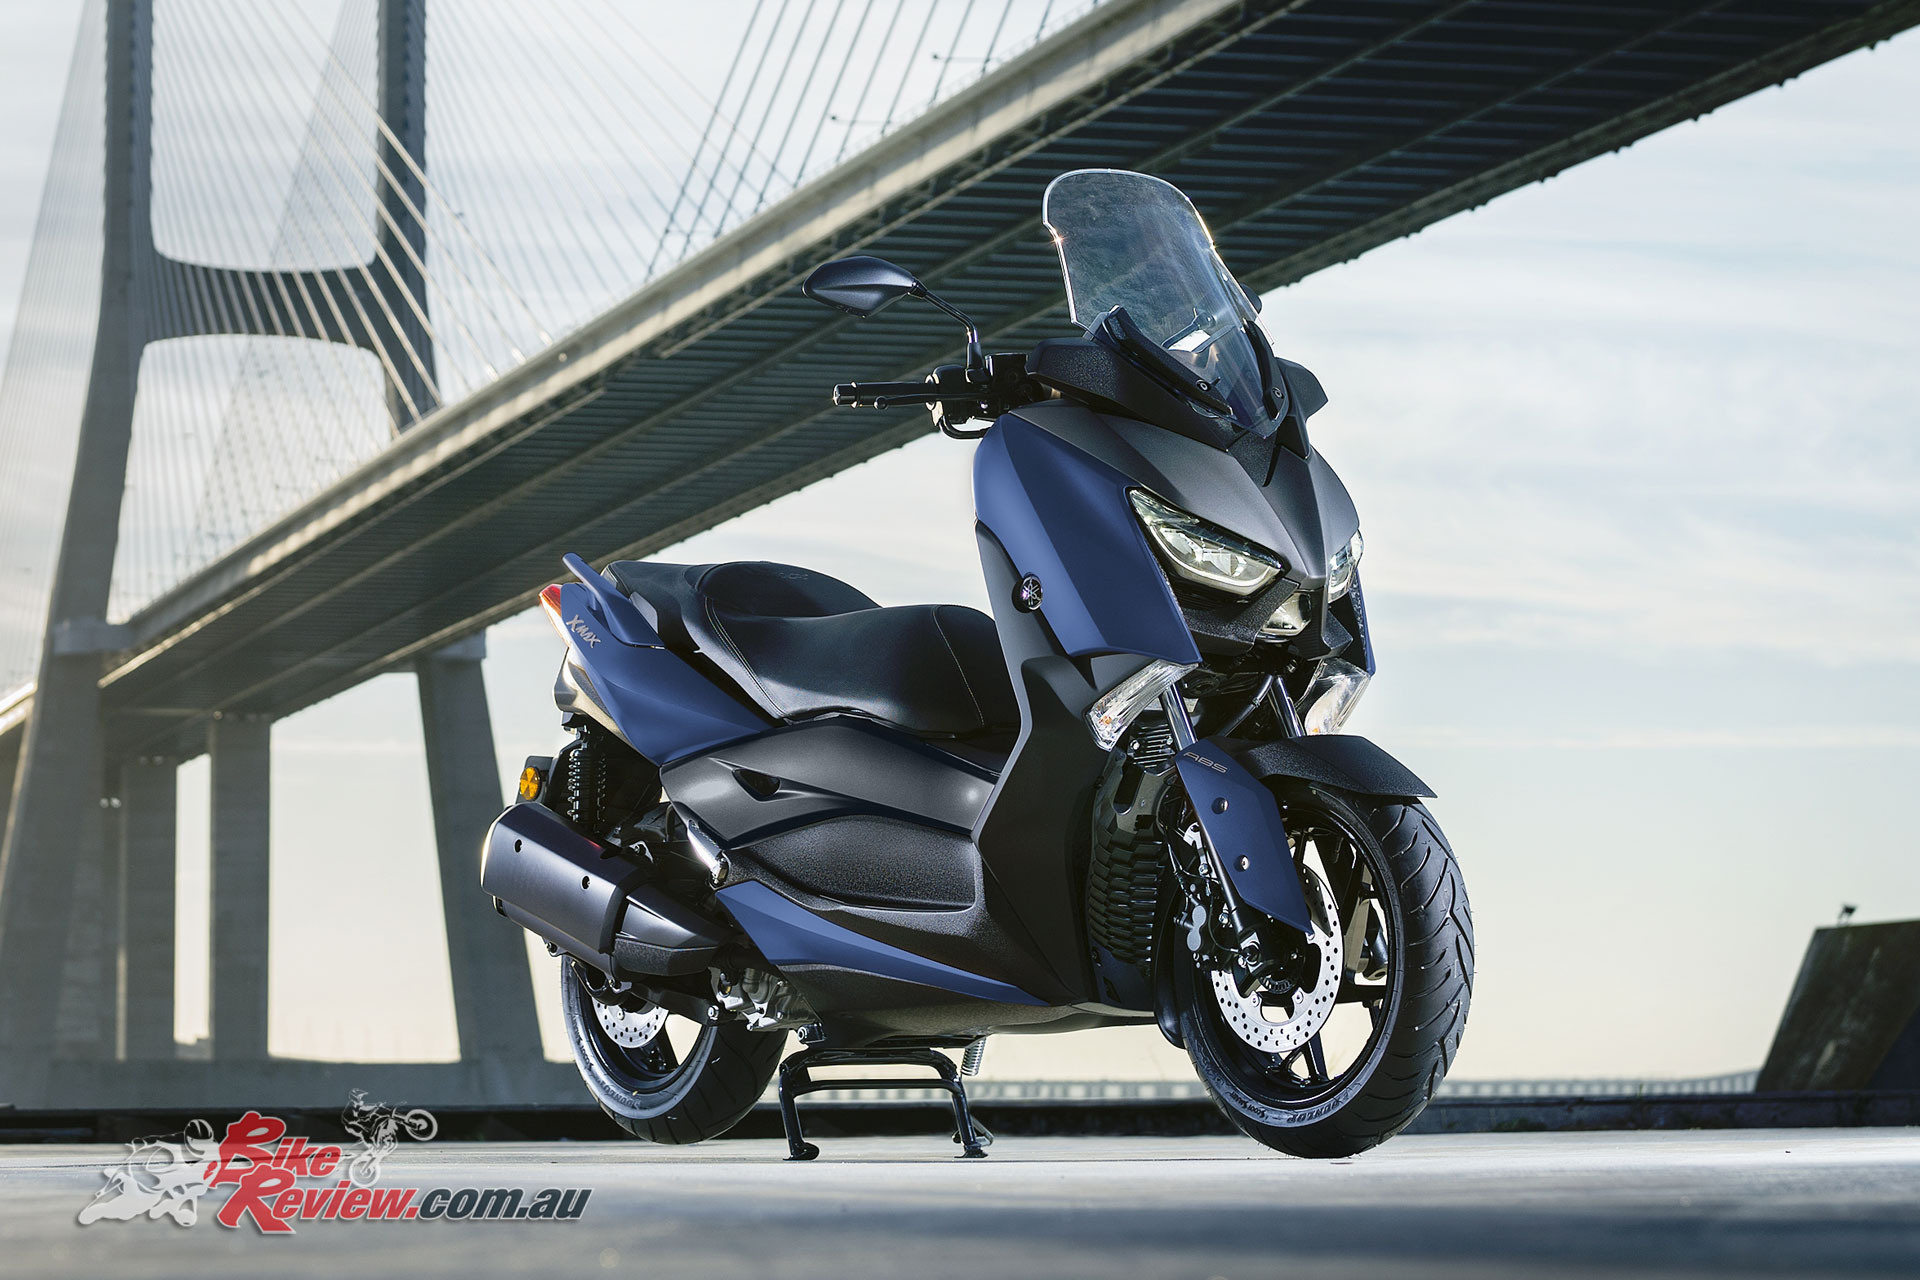 Honda Riding Gear >> Yamaha announce updated MAX scooter range at EICMA - Bike Review